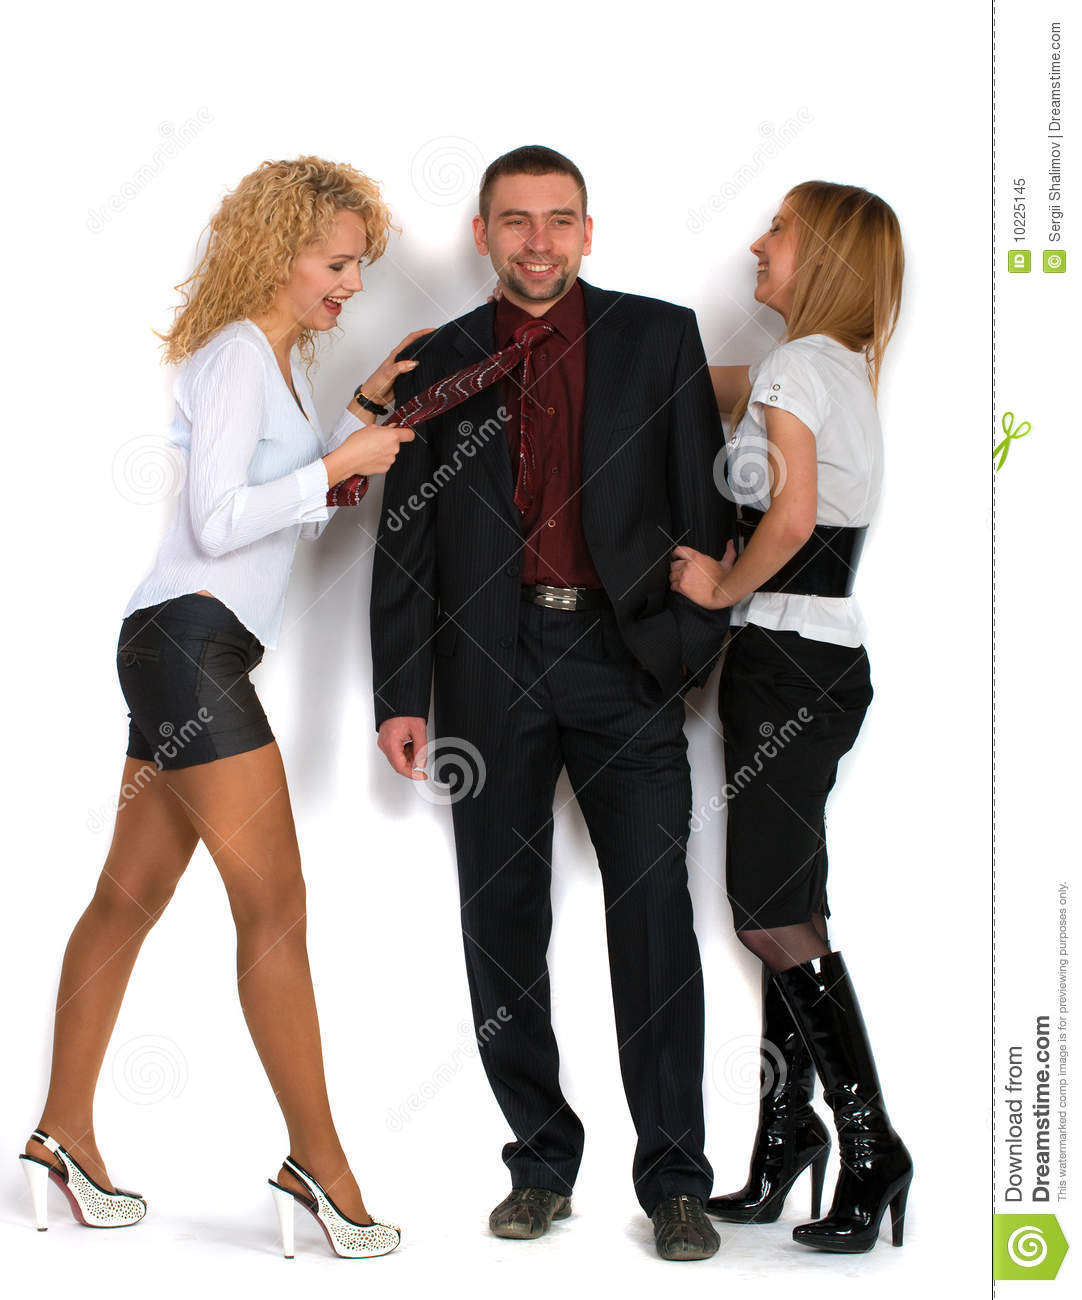 Business Man With Two Girls Stock Image - Image of pretty